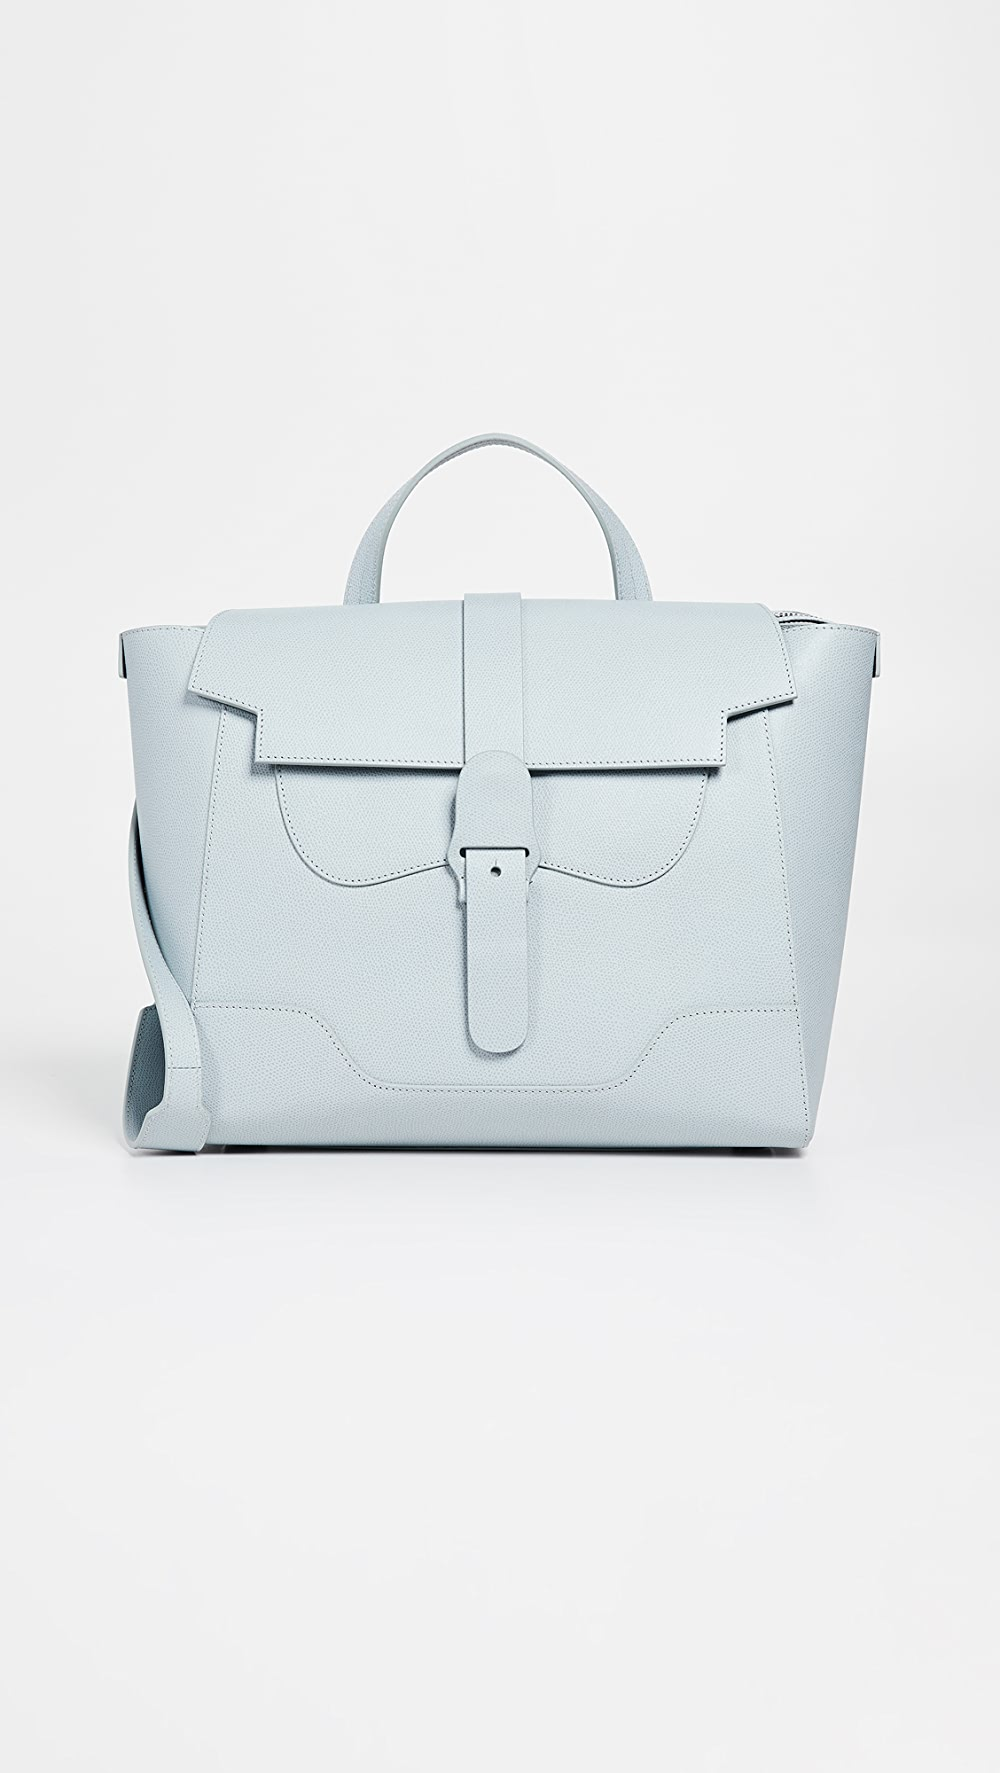 Enthusiastic Senreve - The Maestra Bag Price Remains Stable